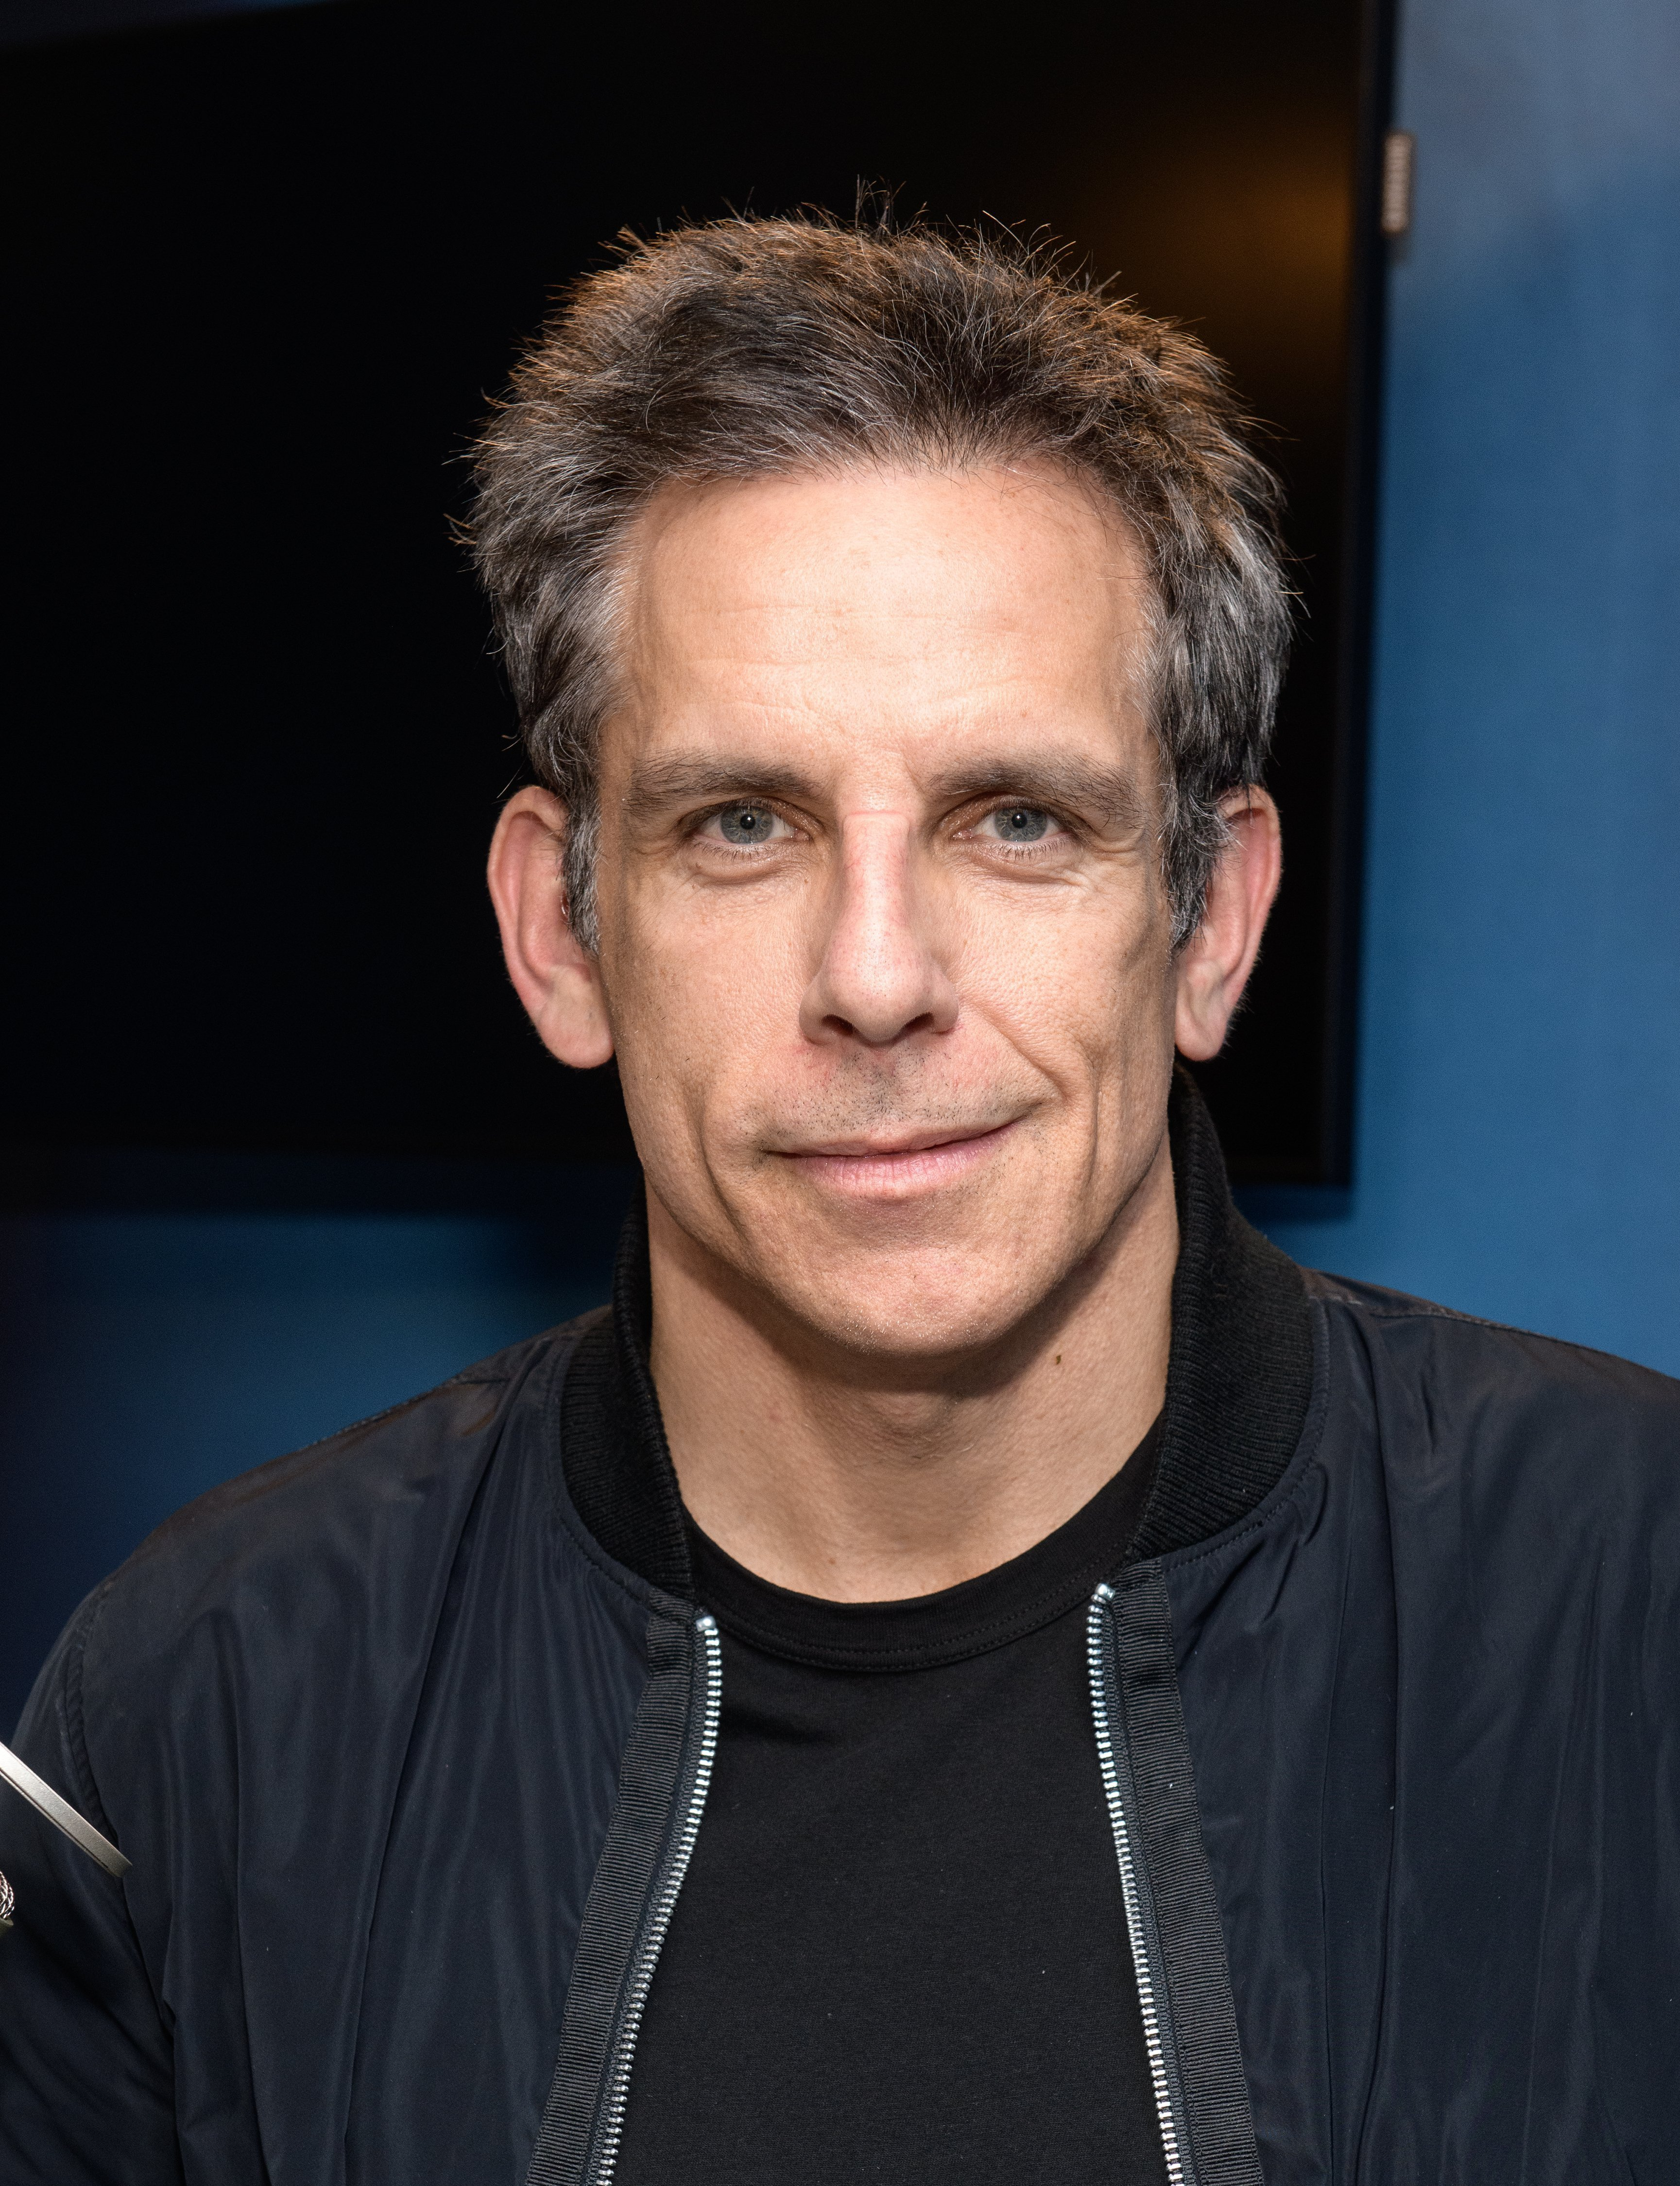 Ben Stiller visits SiriusXM Studios in New York City on May 6, 2019 | Photo: Getty Images